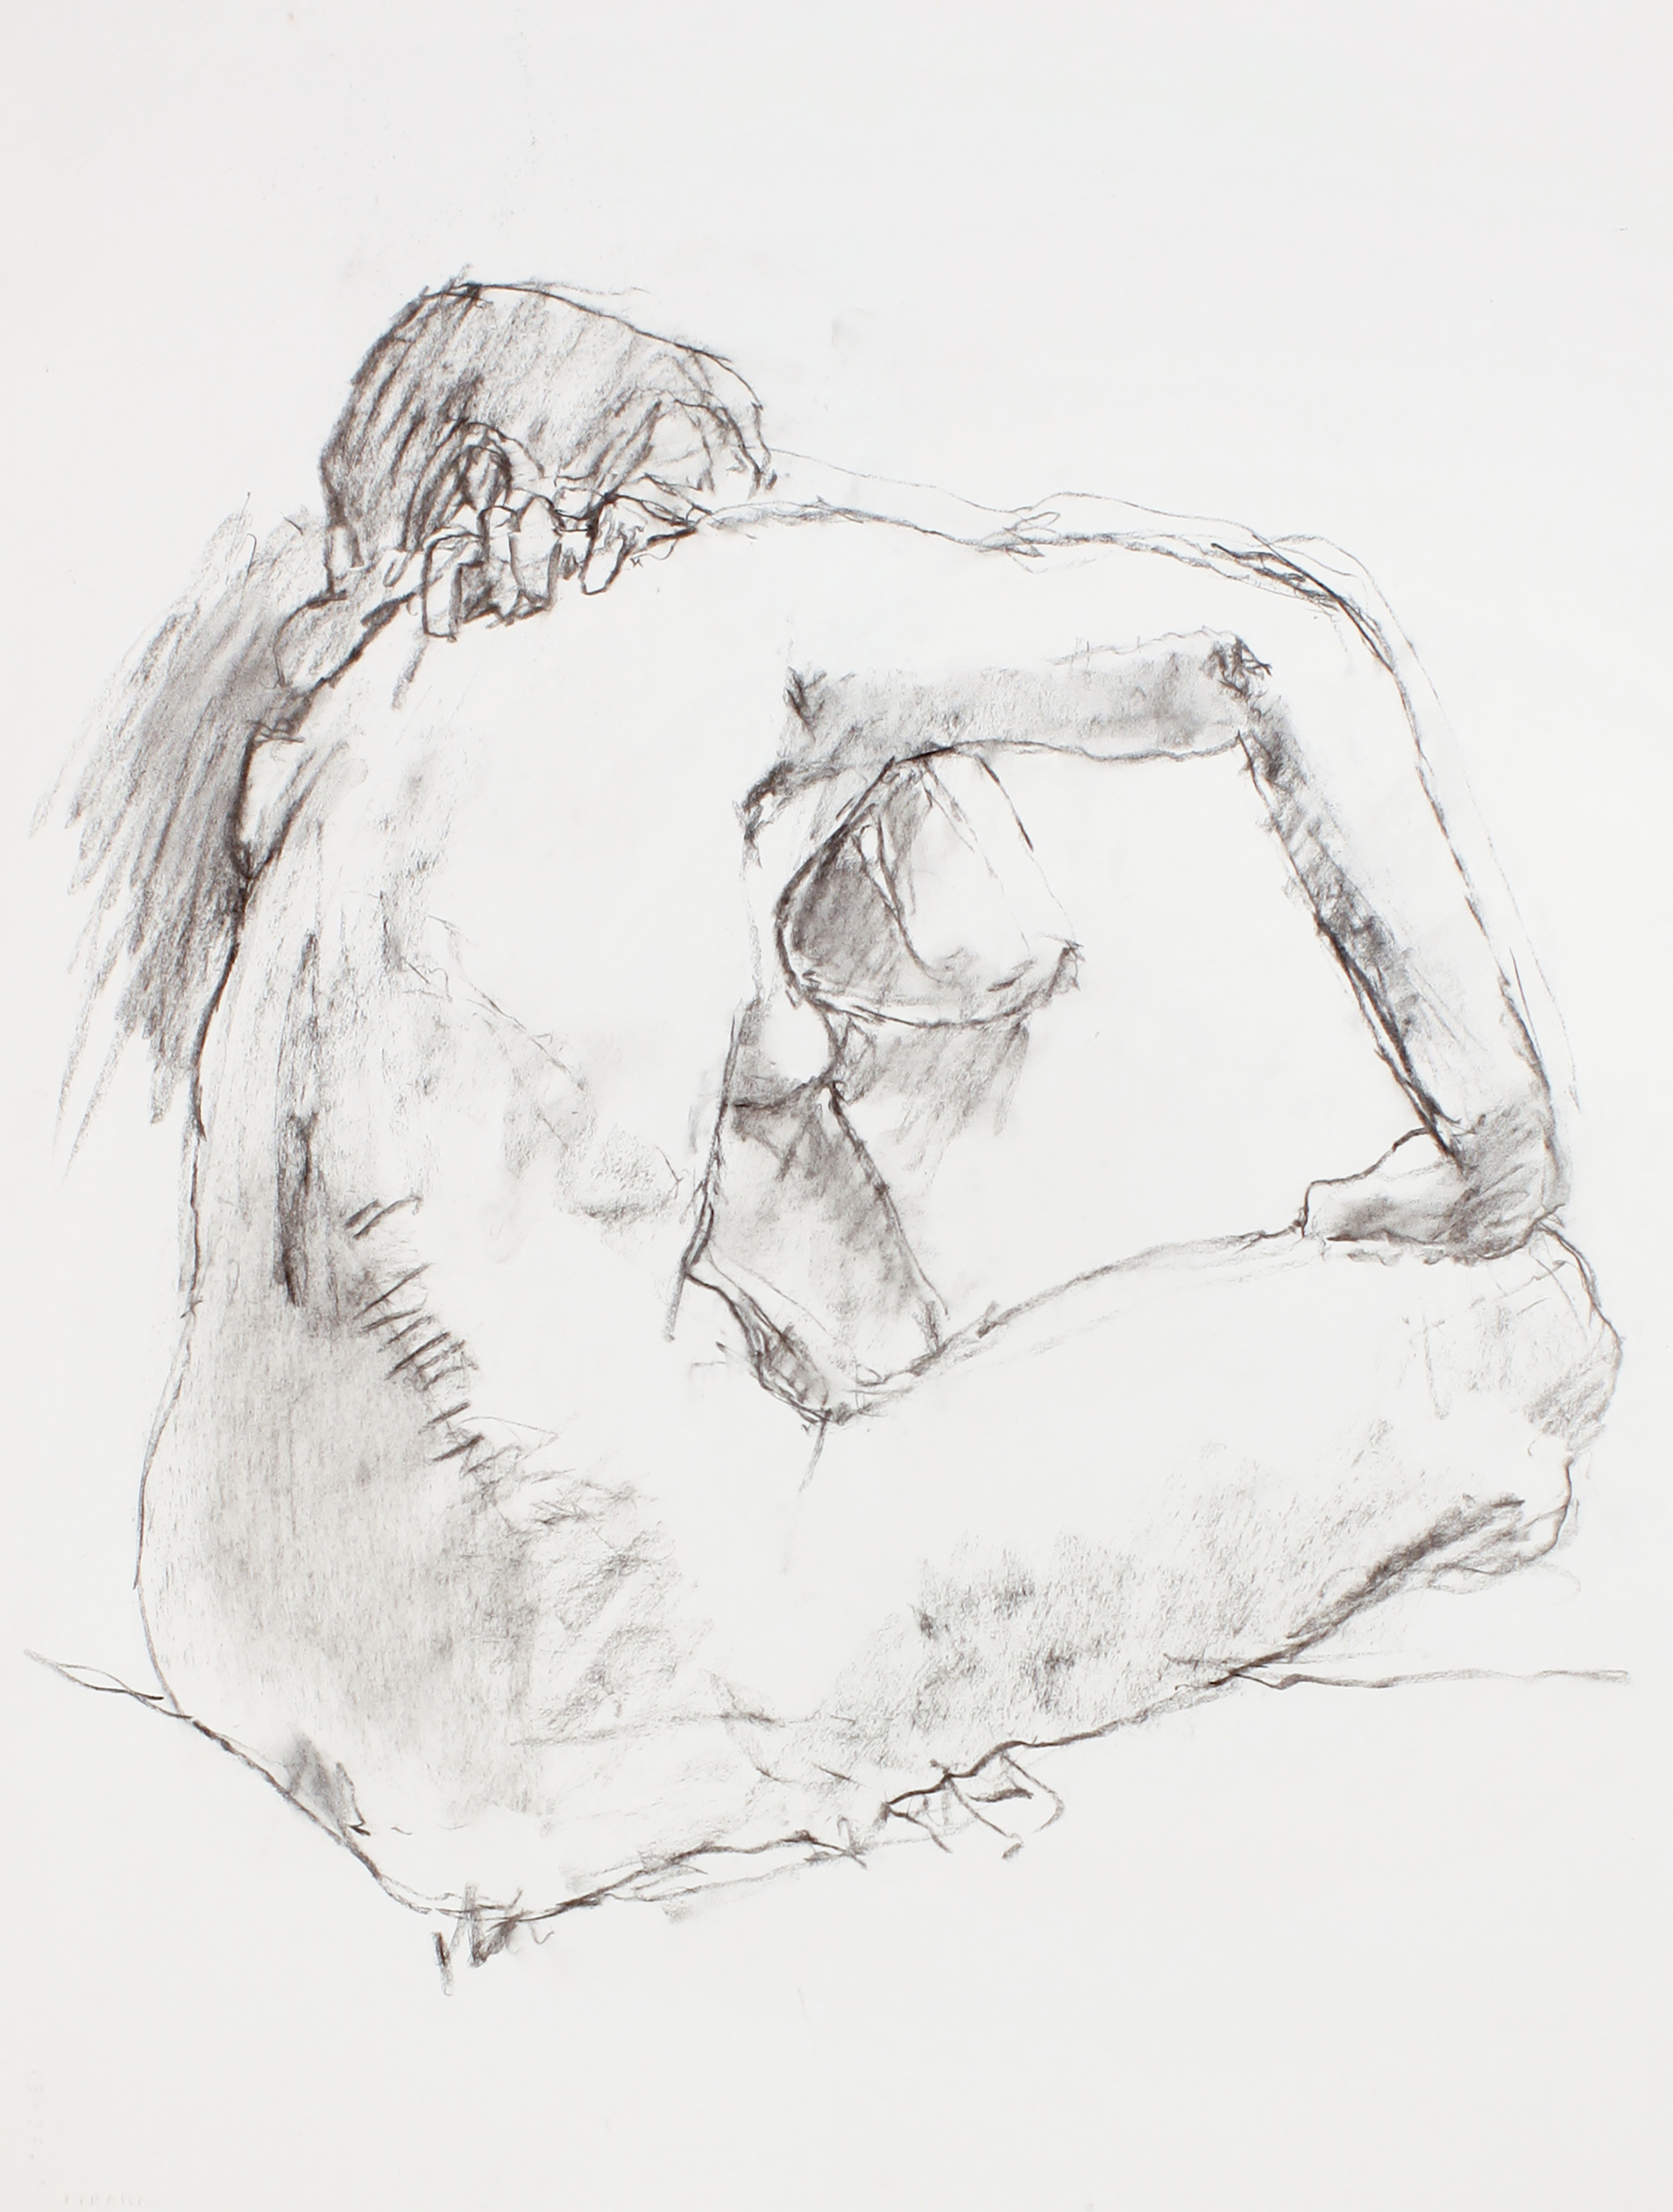 2003_Seated_Nude_with_Hand_on_Knee_from_Back_charcoal_on_paper_23x17in_WPF448.jpg